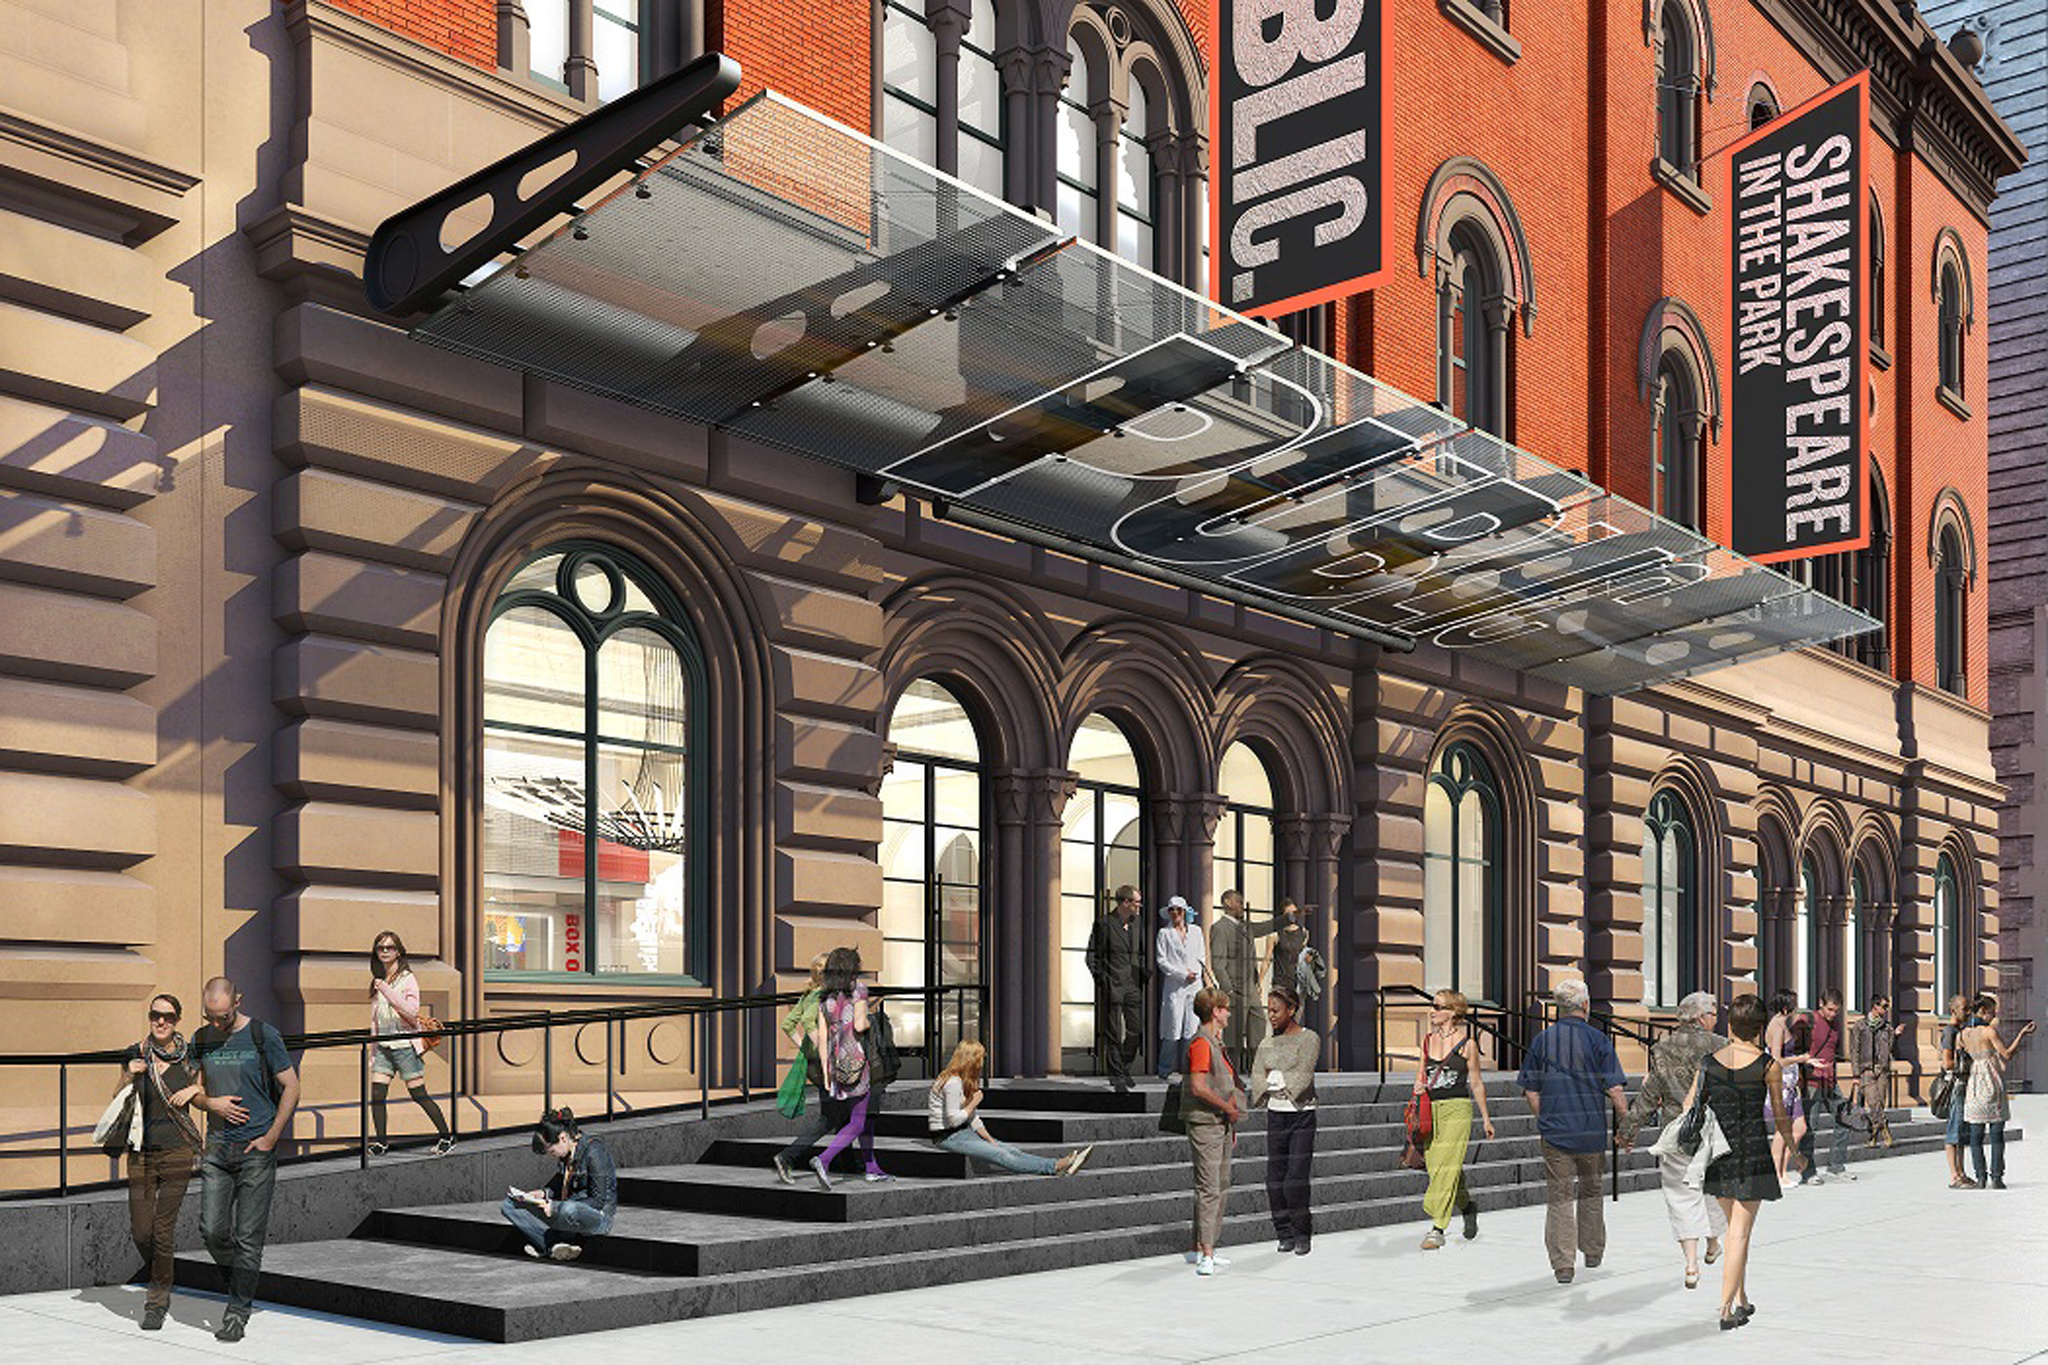 Check out the Public Theater's redone digs